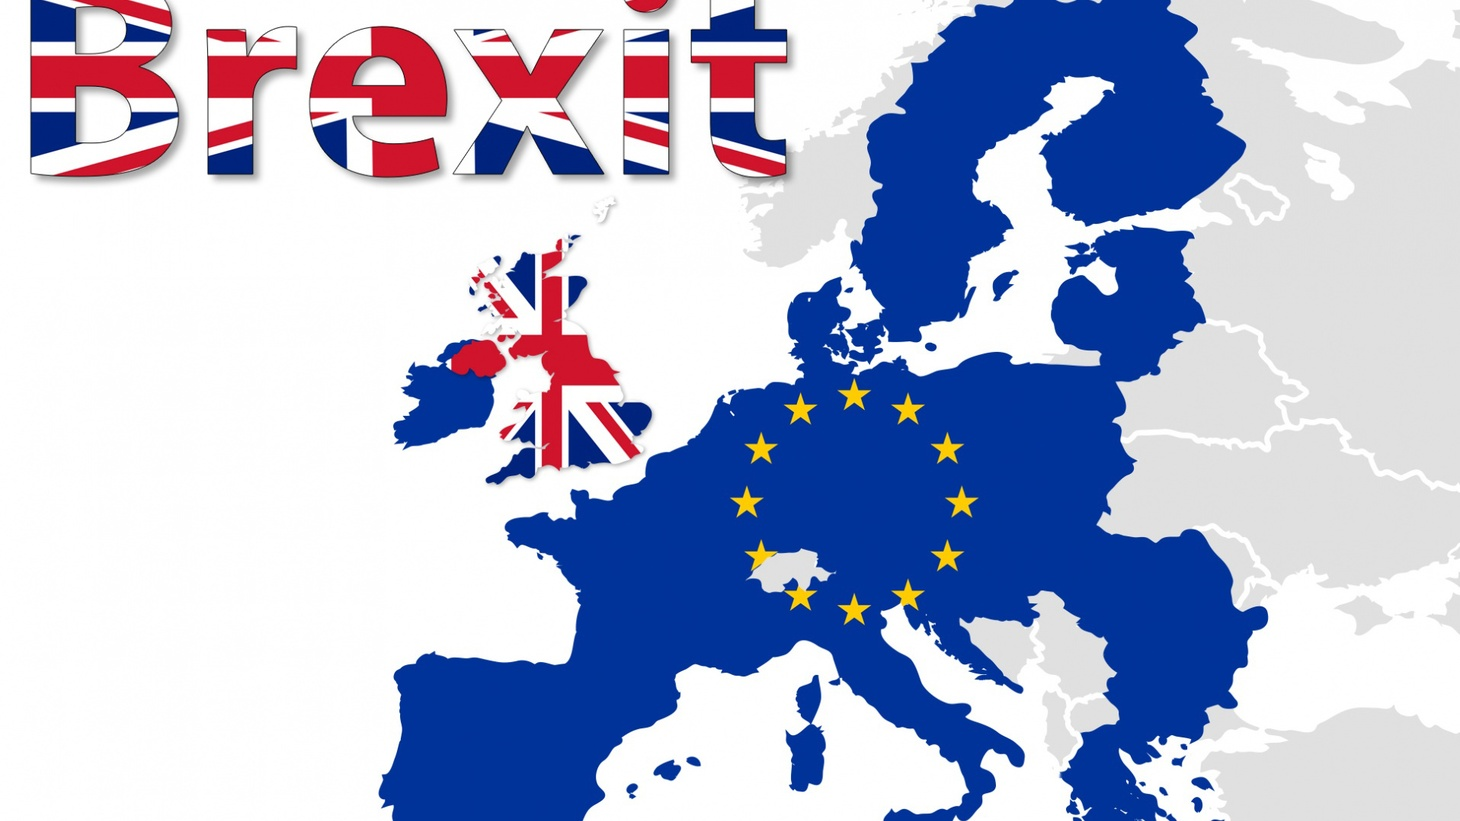 The Brexit campaign says Britain's established leaders have sold out to a distant bureaucracy and allowed immigration to get out of control. With voters about to decide if it's time to leave the European Union, there's a difference between hearts and minds.